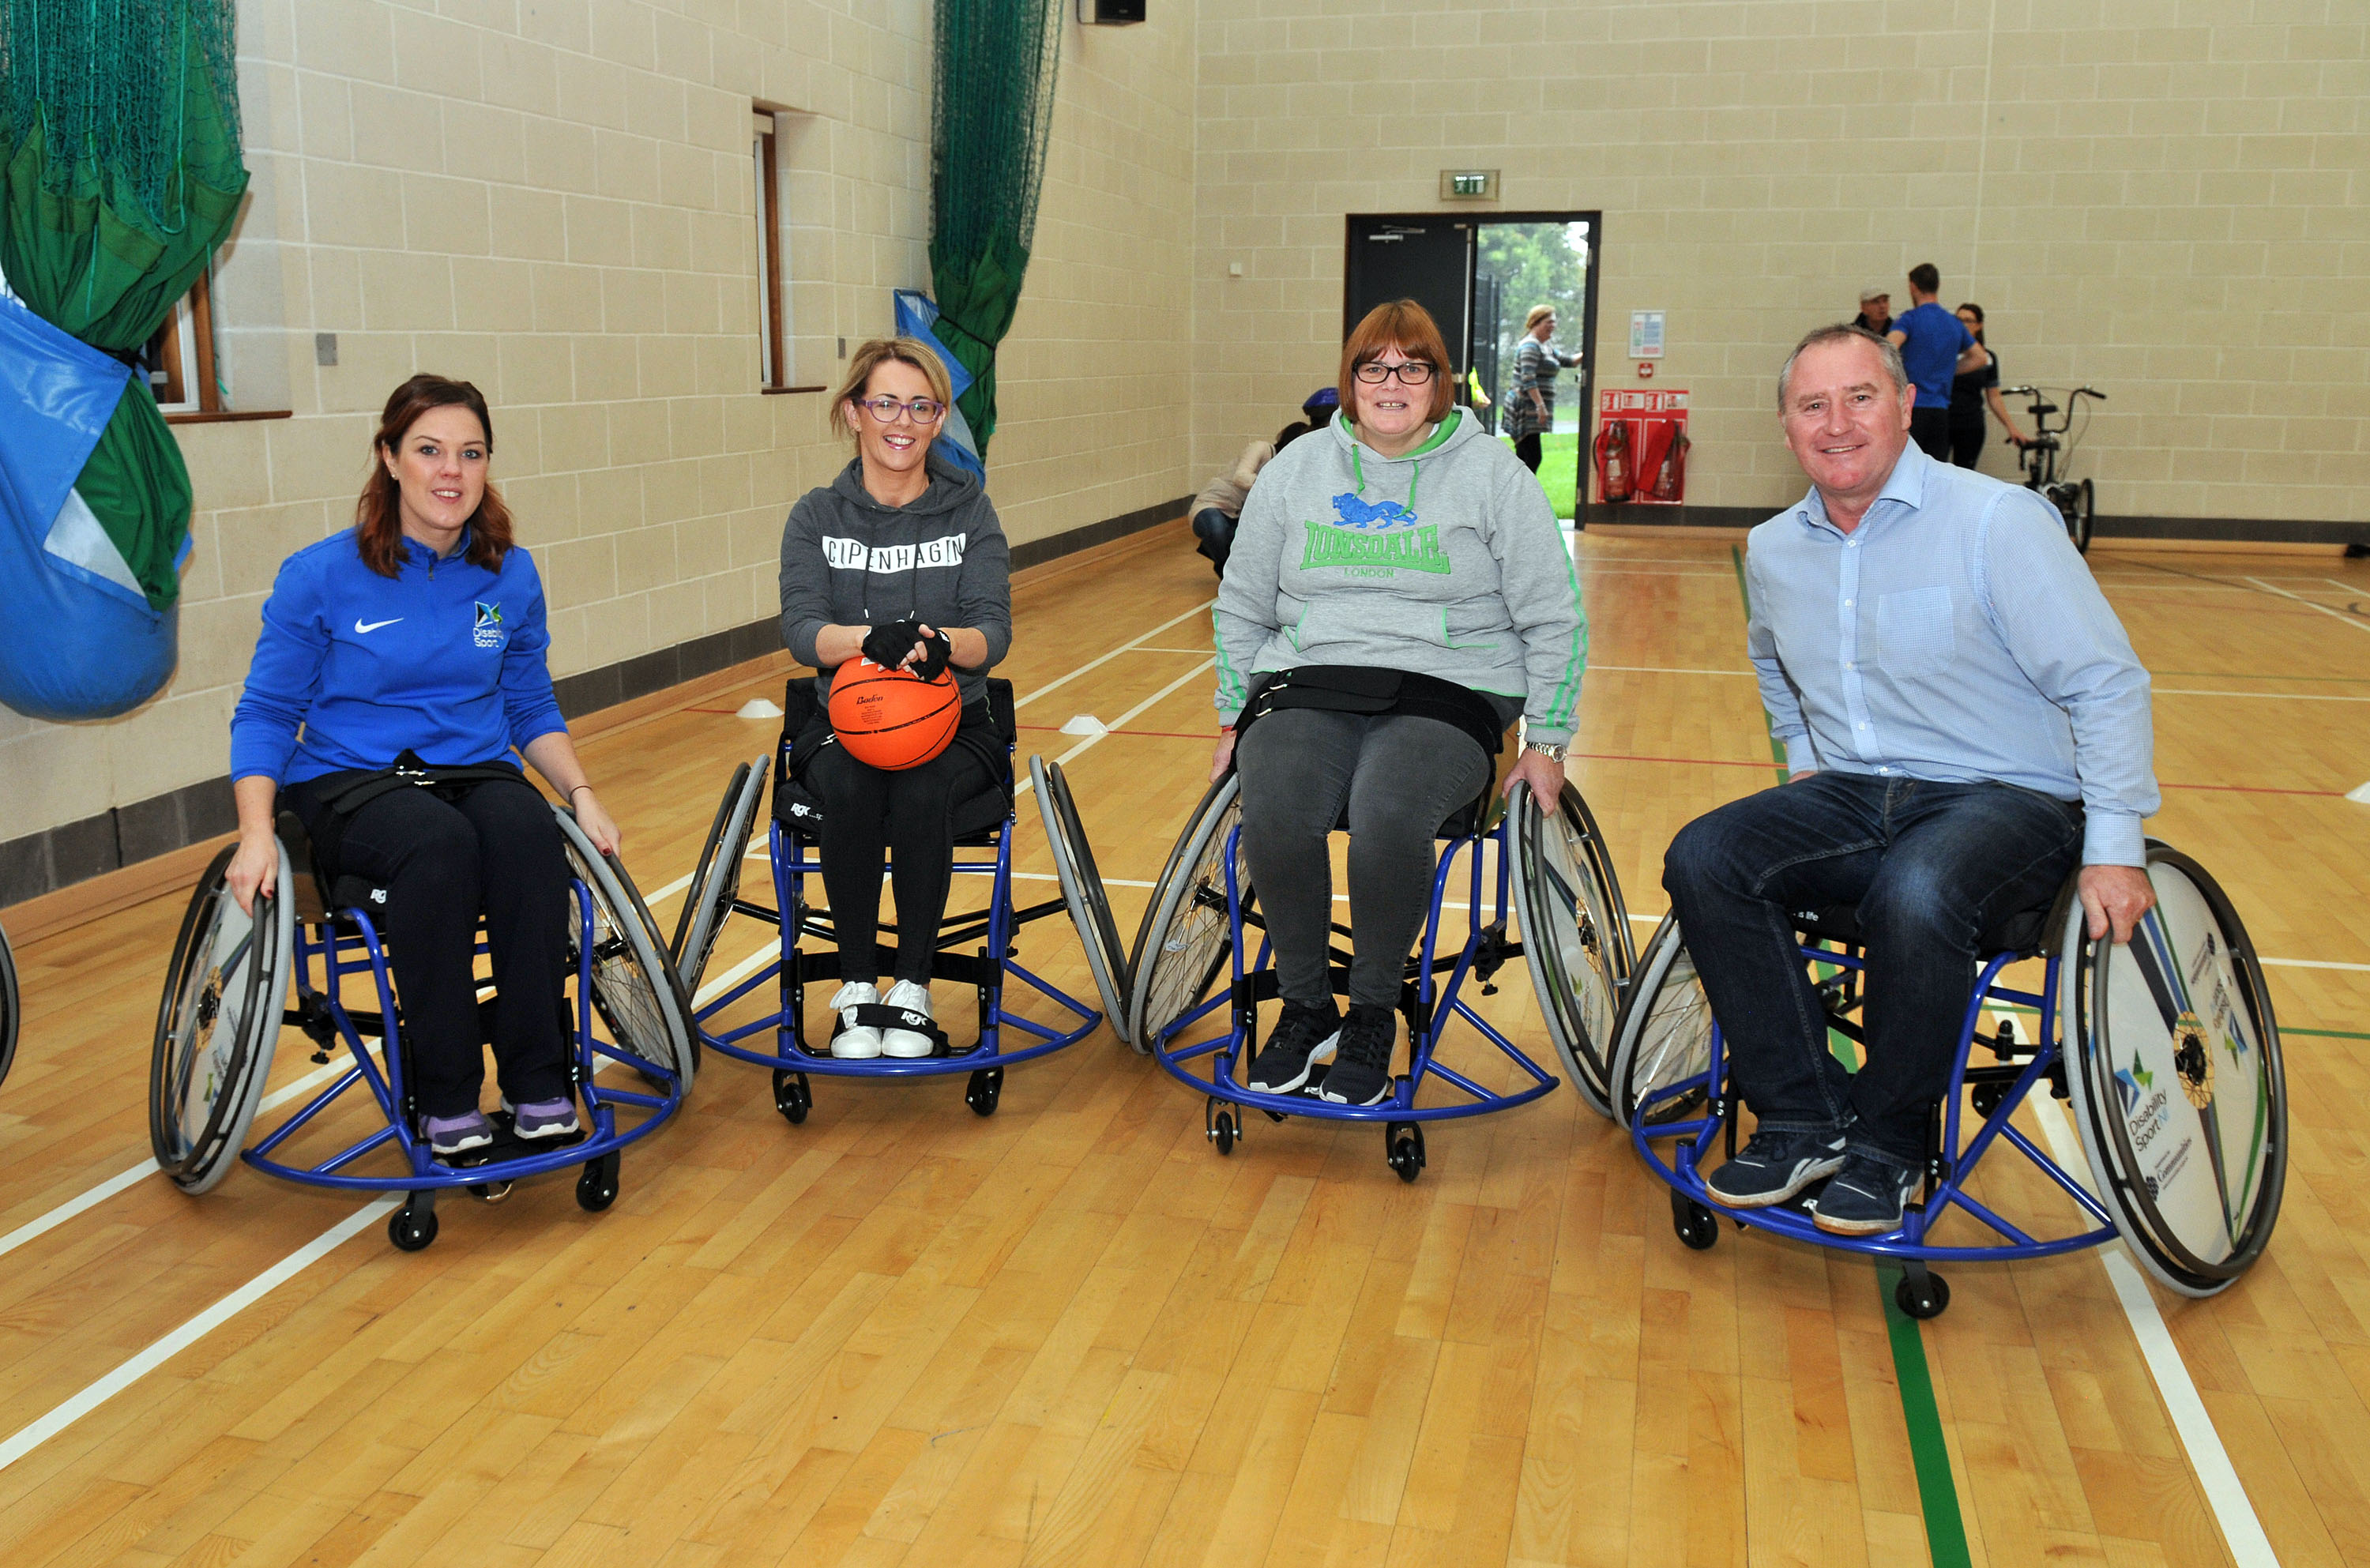 2.Colleen Connolly, Disability Sport NI, Julie Wilson, Daryl Cupples and Cllr Declan McAlinden, Chair of the Leisure Services Committee giving wheelchair basketball a go.